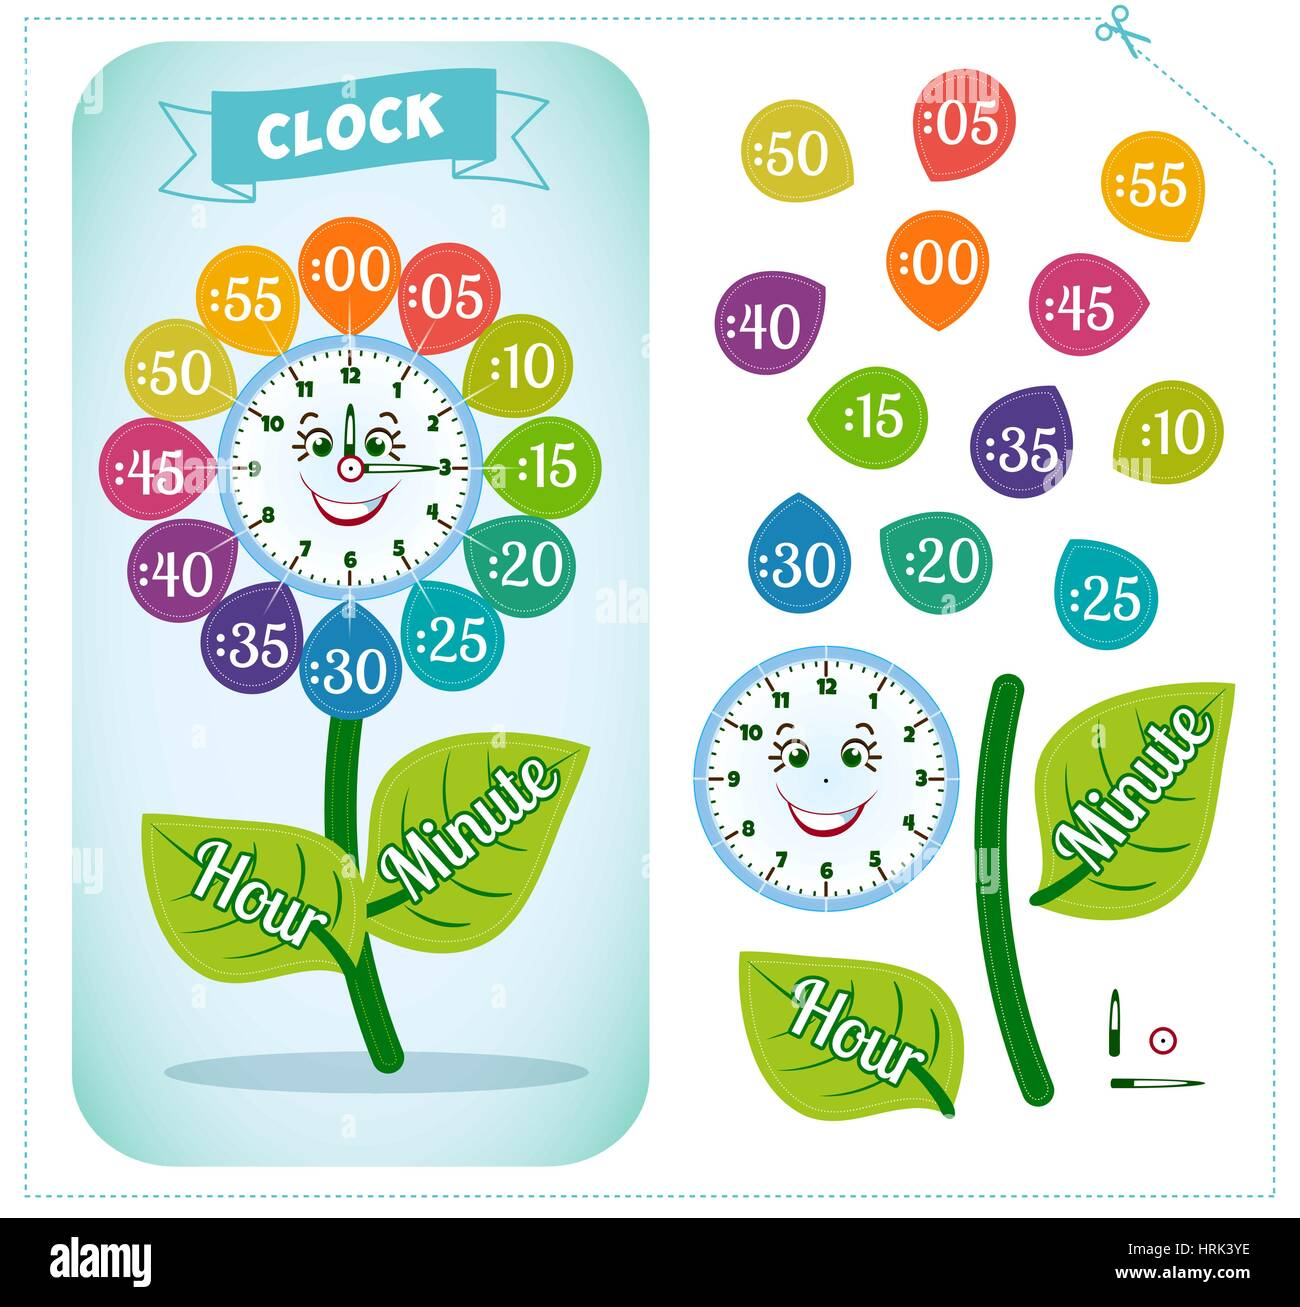 Telling Time Worksheet For School Kids To Identify The Time Clock Stock Vector Art